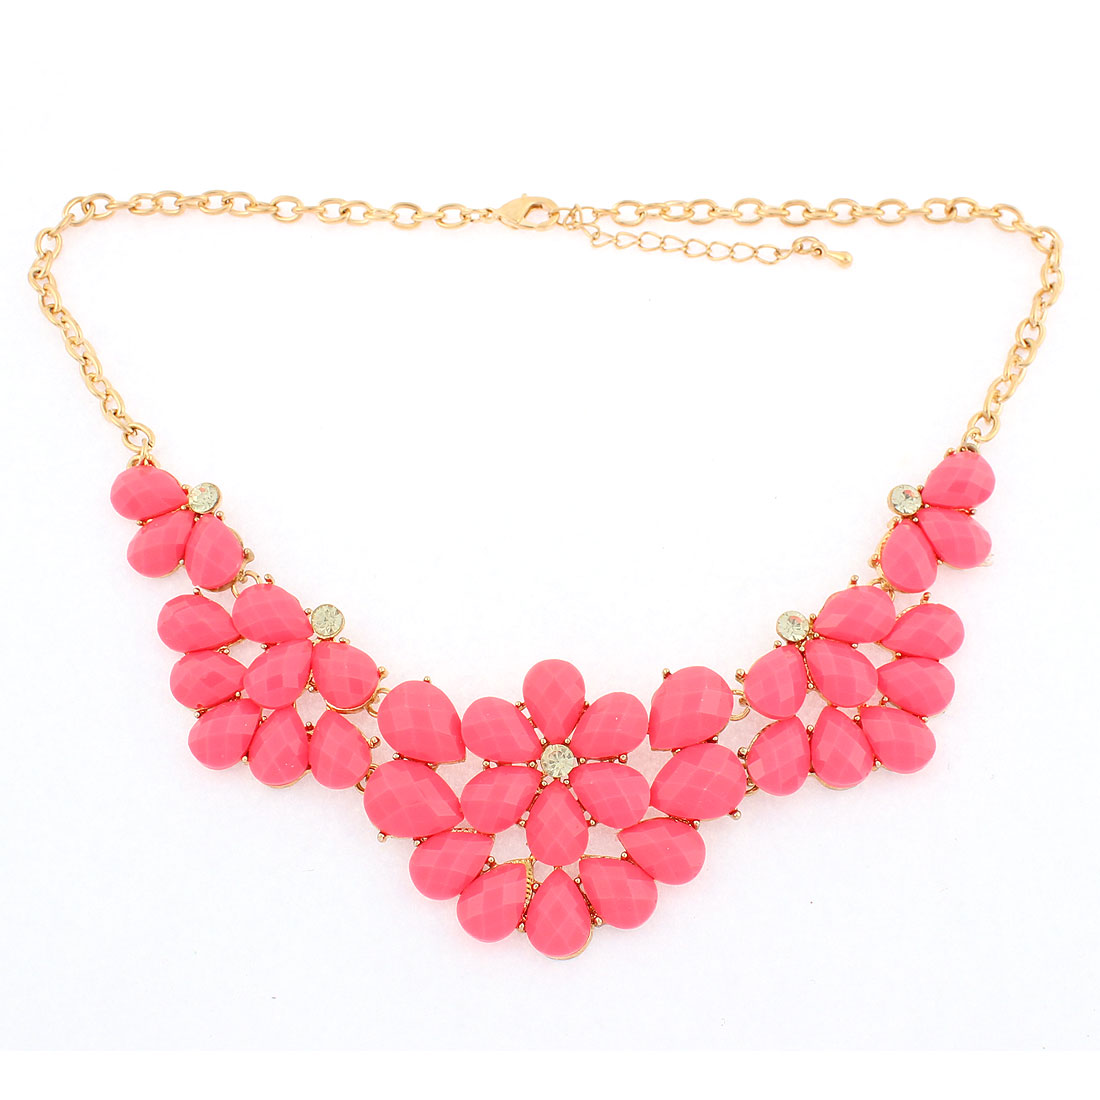 Pink Faceted Stone Pendant Gold Plated Chain Necklace Jewelry